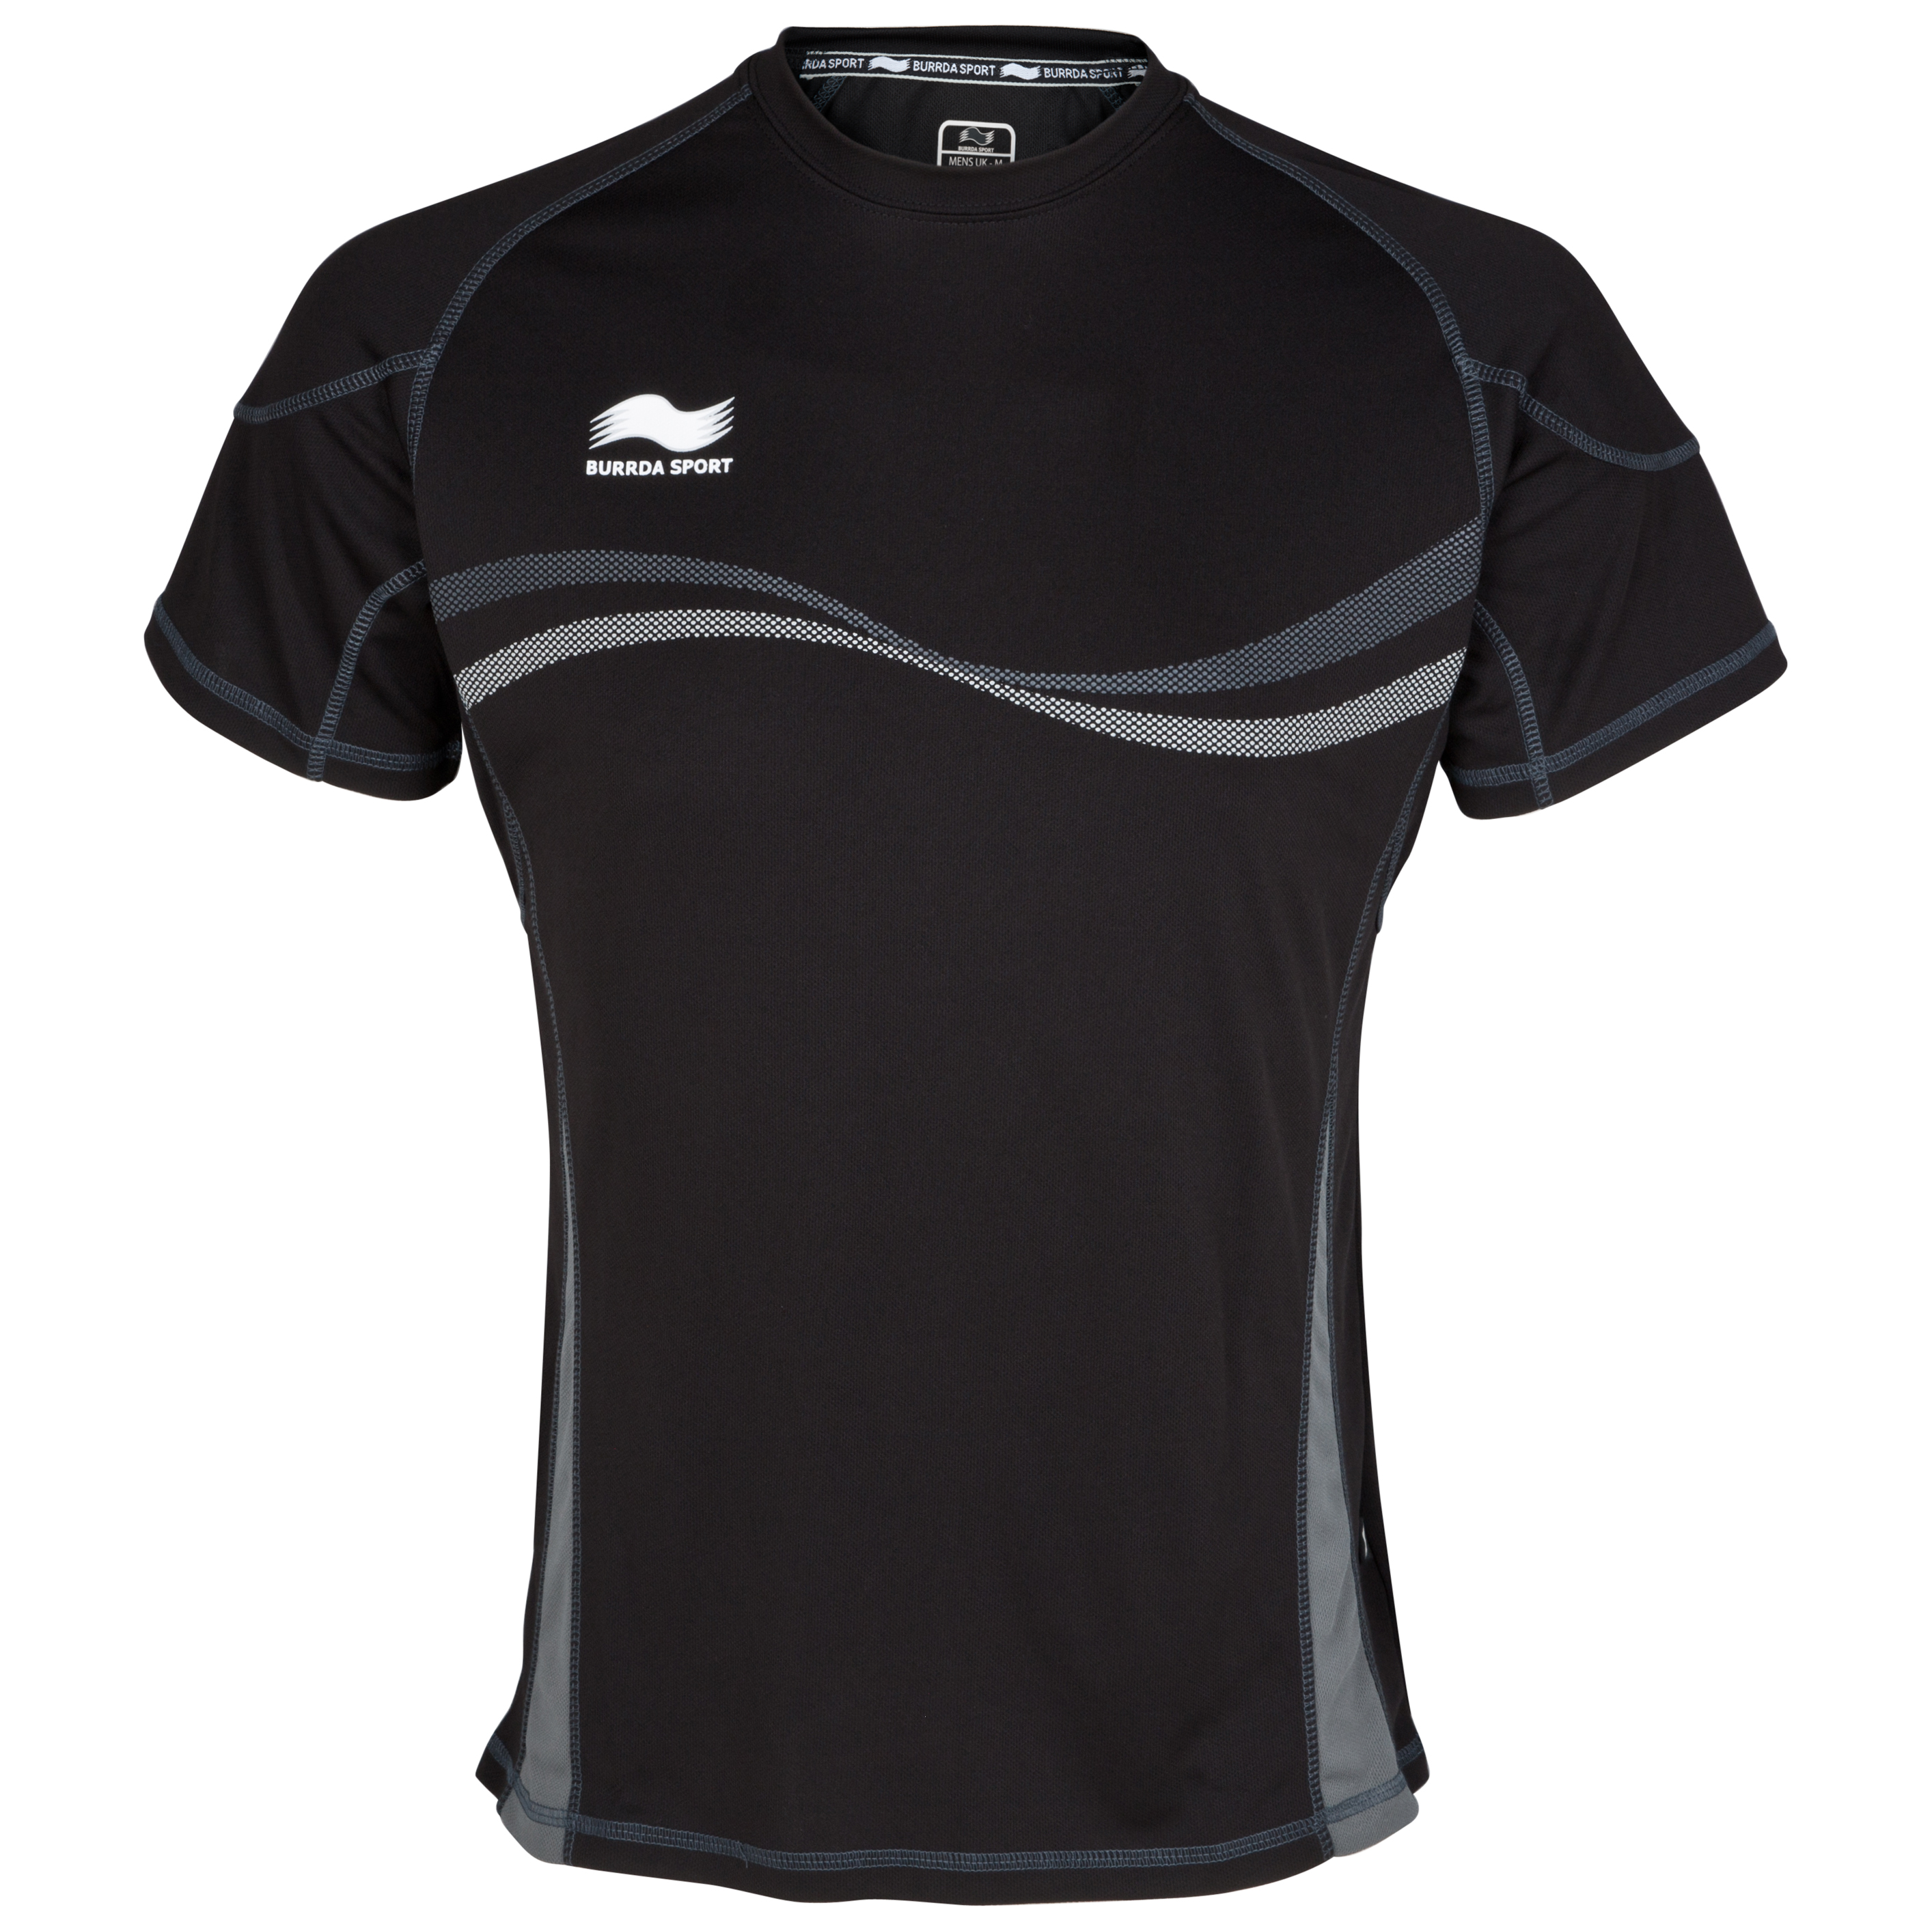 Burrda Sport Rugby Training T-Shirt - Black